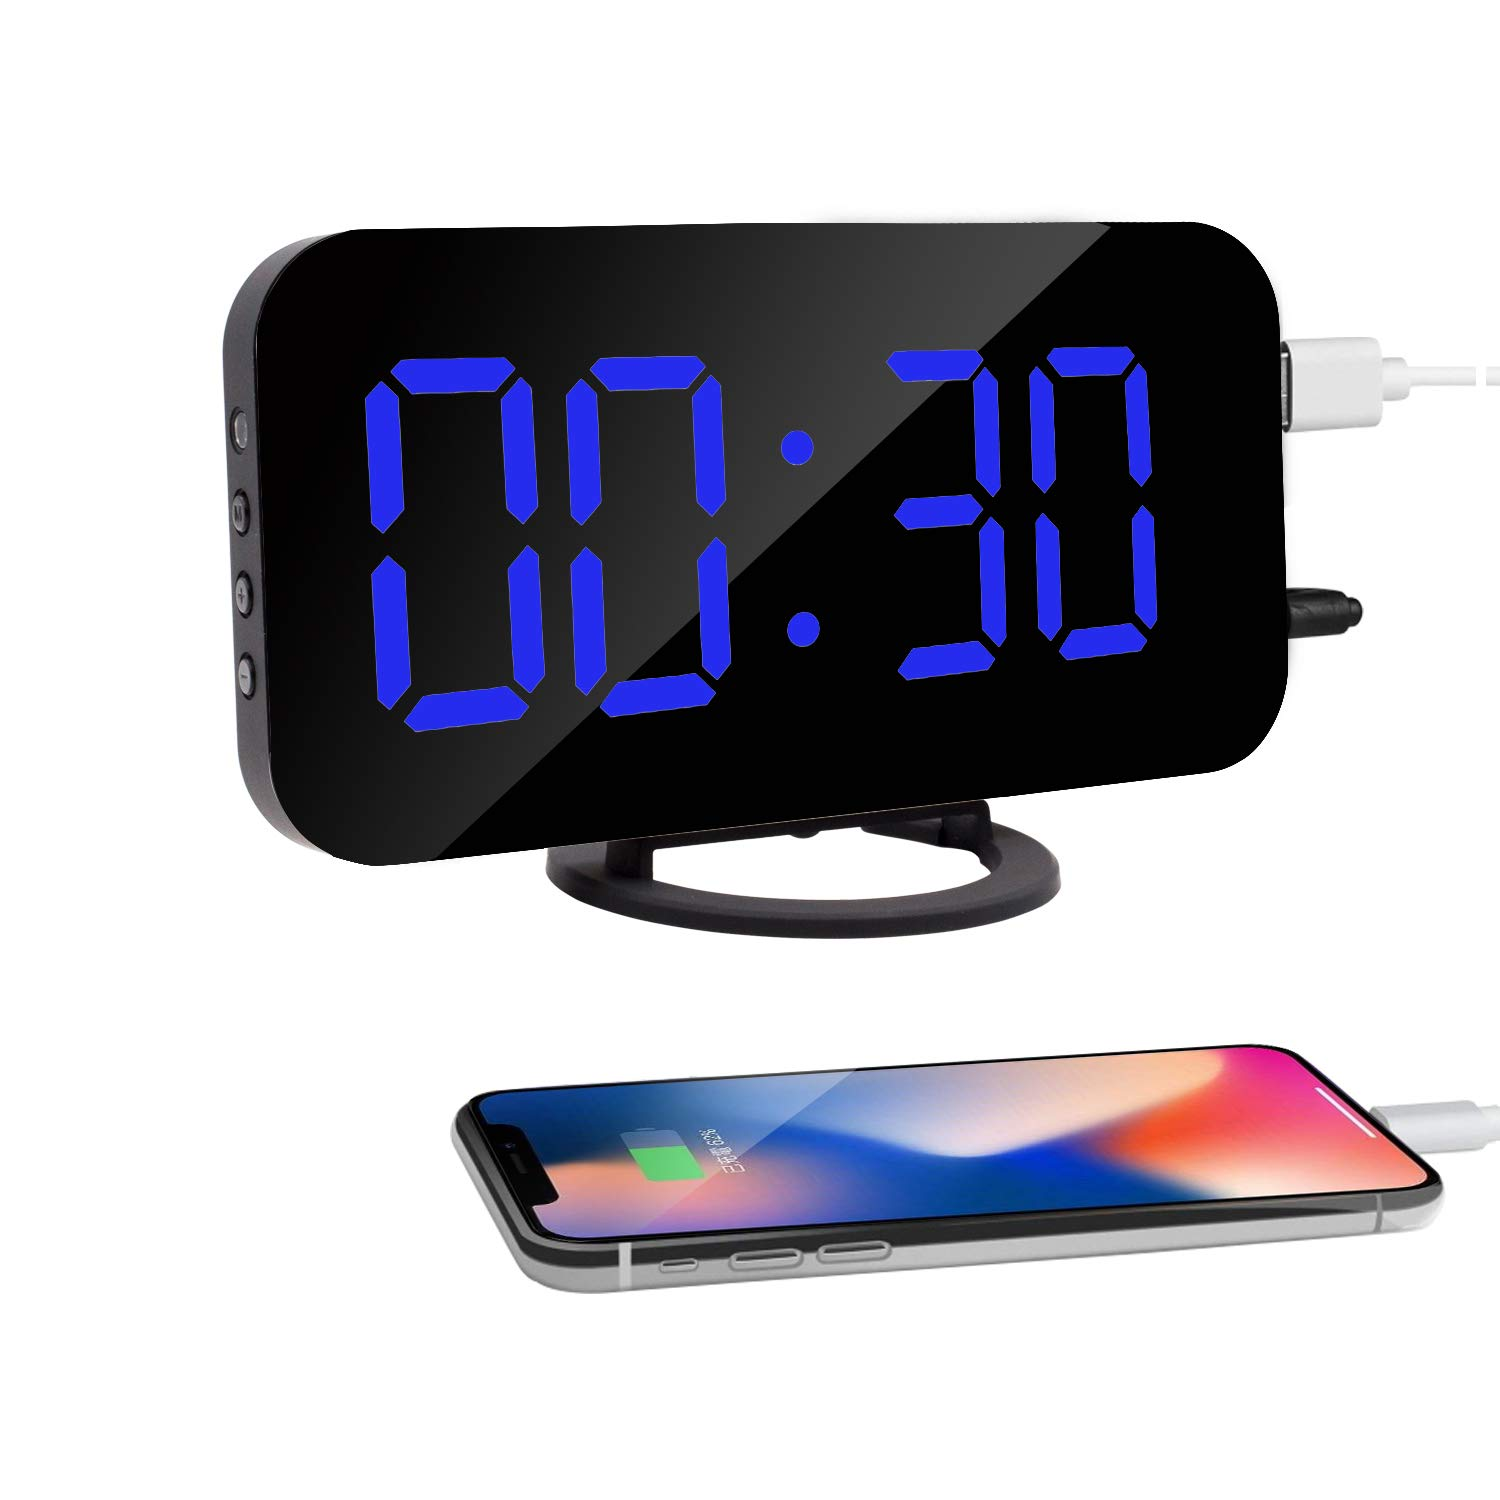 HuiSmart Digital Mirror Alarm Clock with Double USB Charging Ports Extra Large LED Display (Blue)